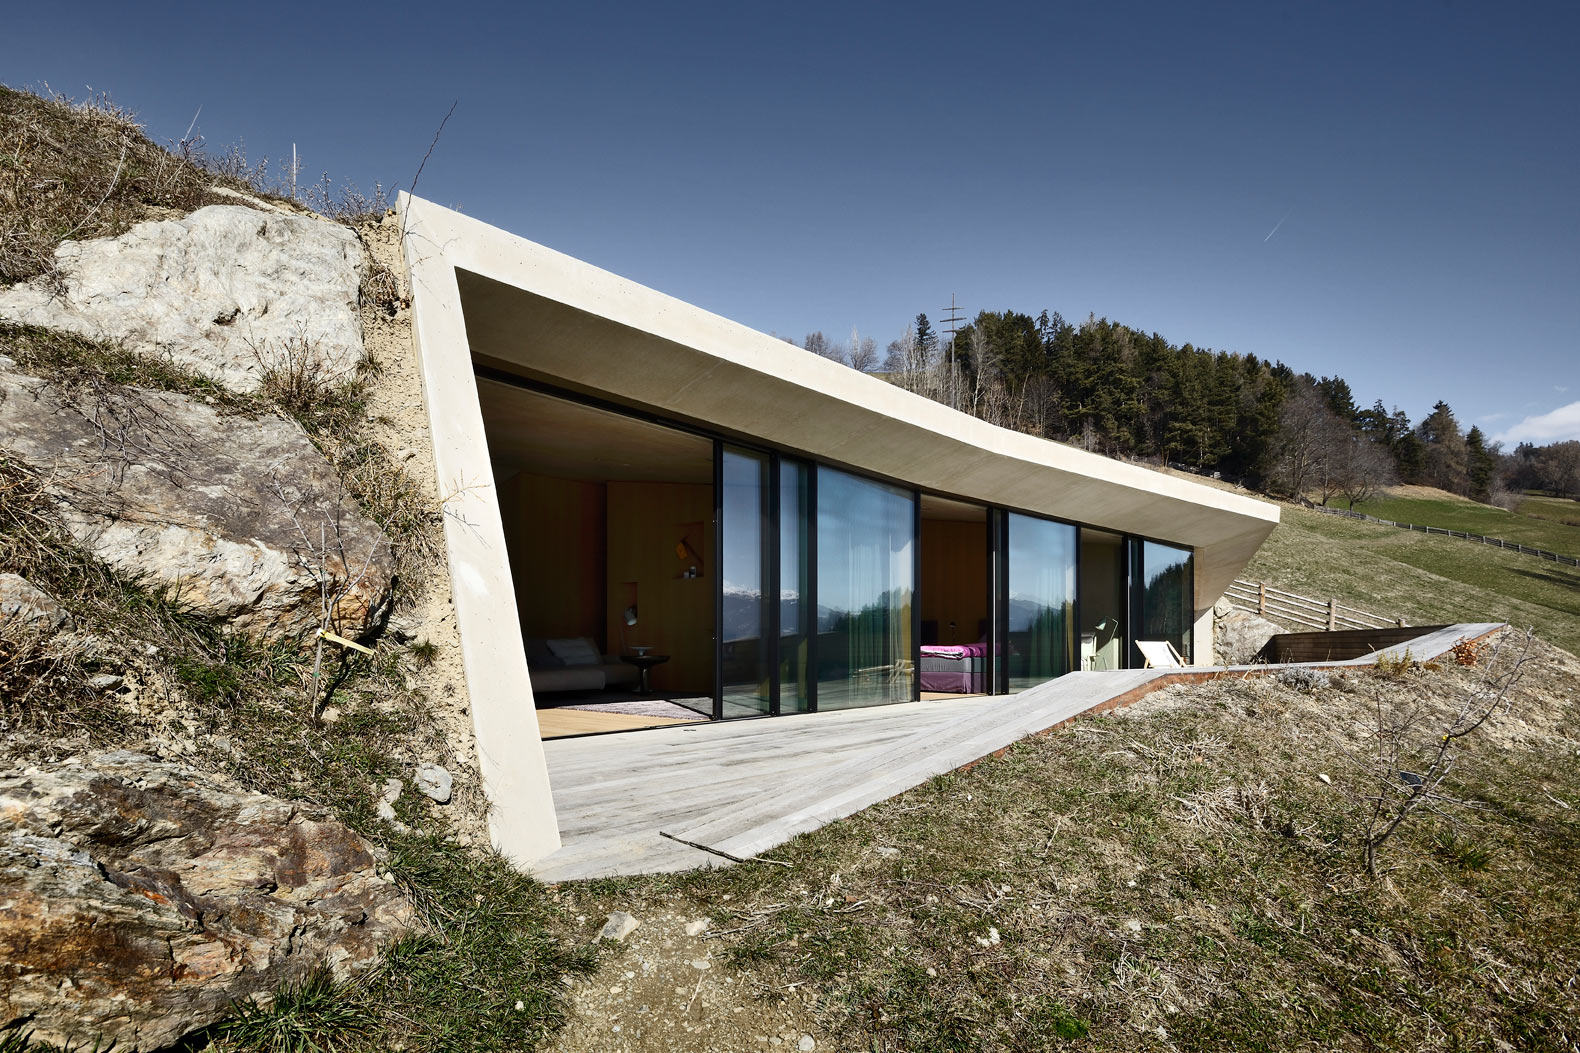 The Felderhof House in Italy is built into the ground and topped with a green roof